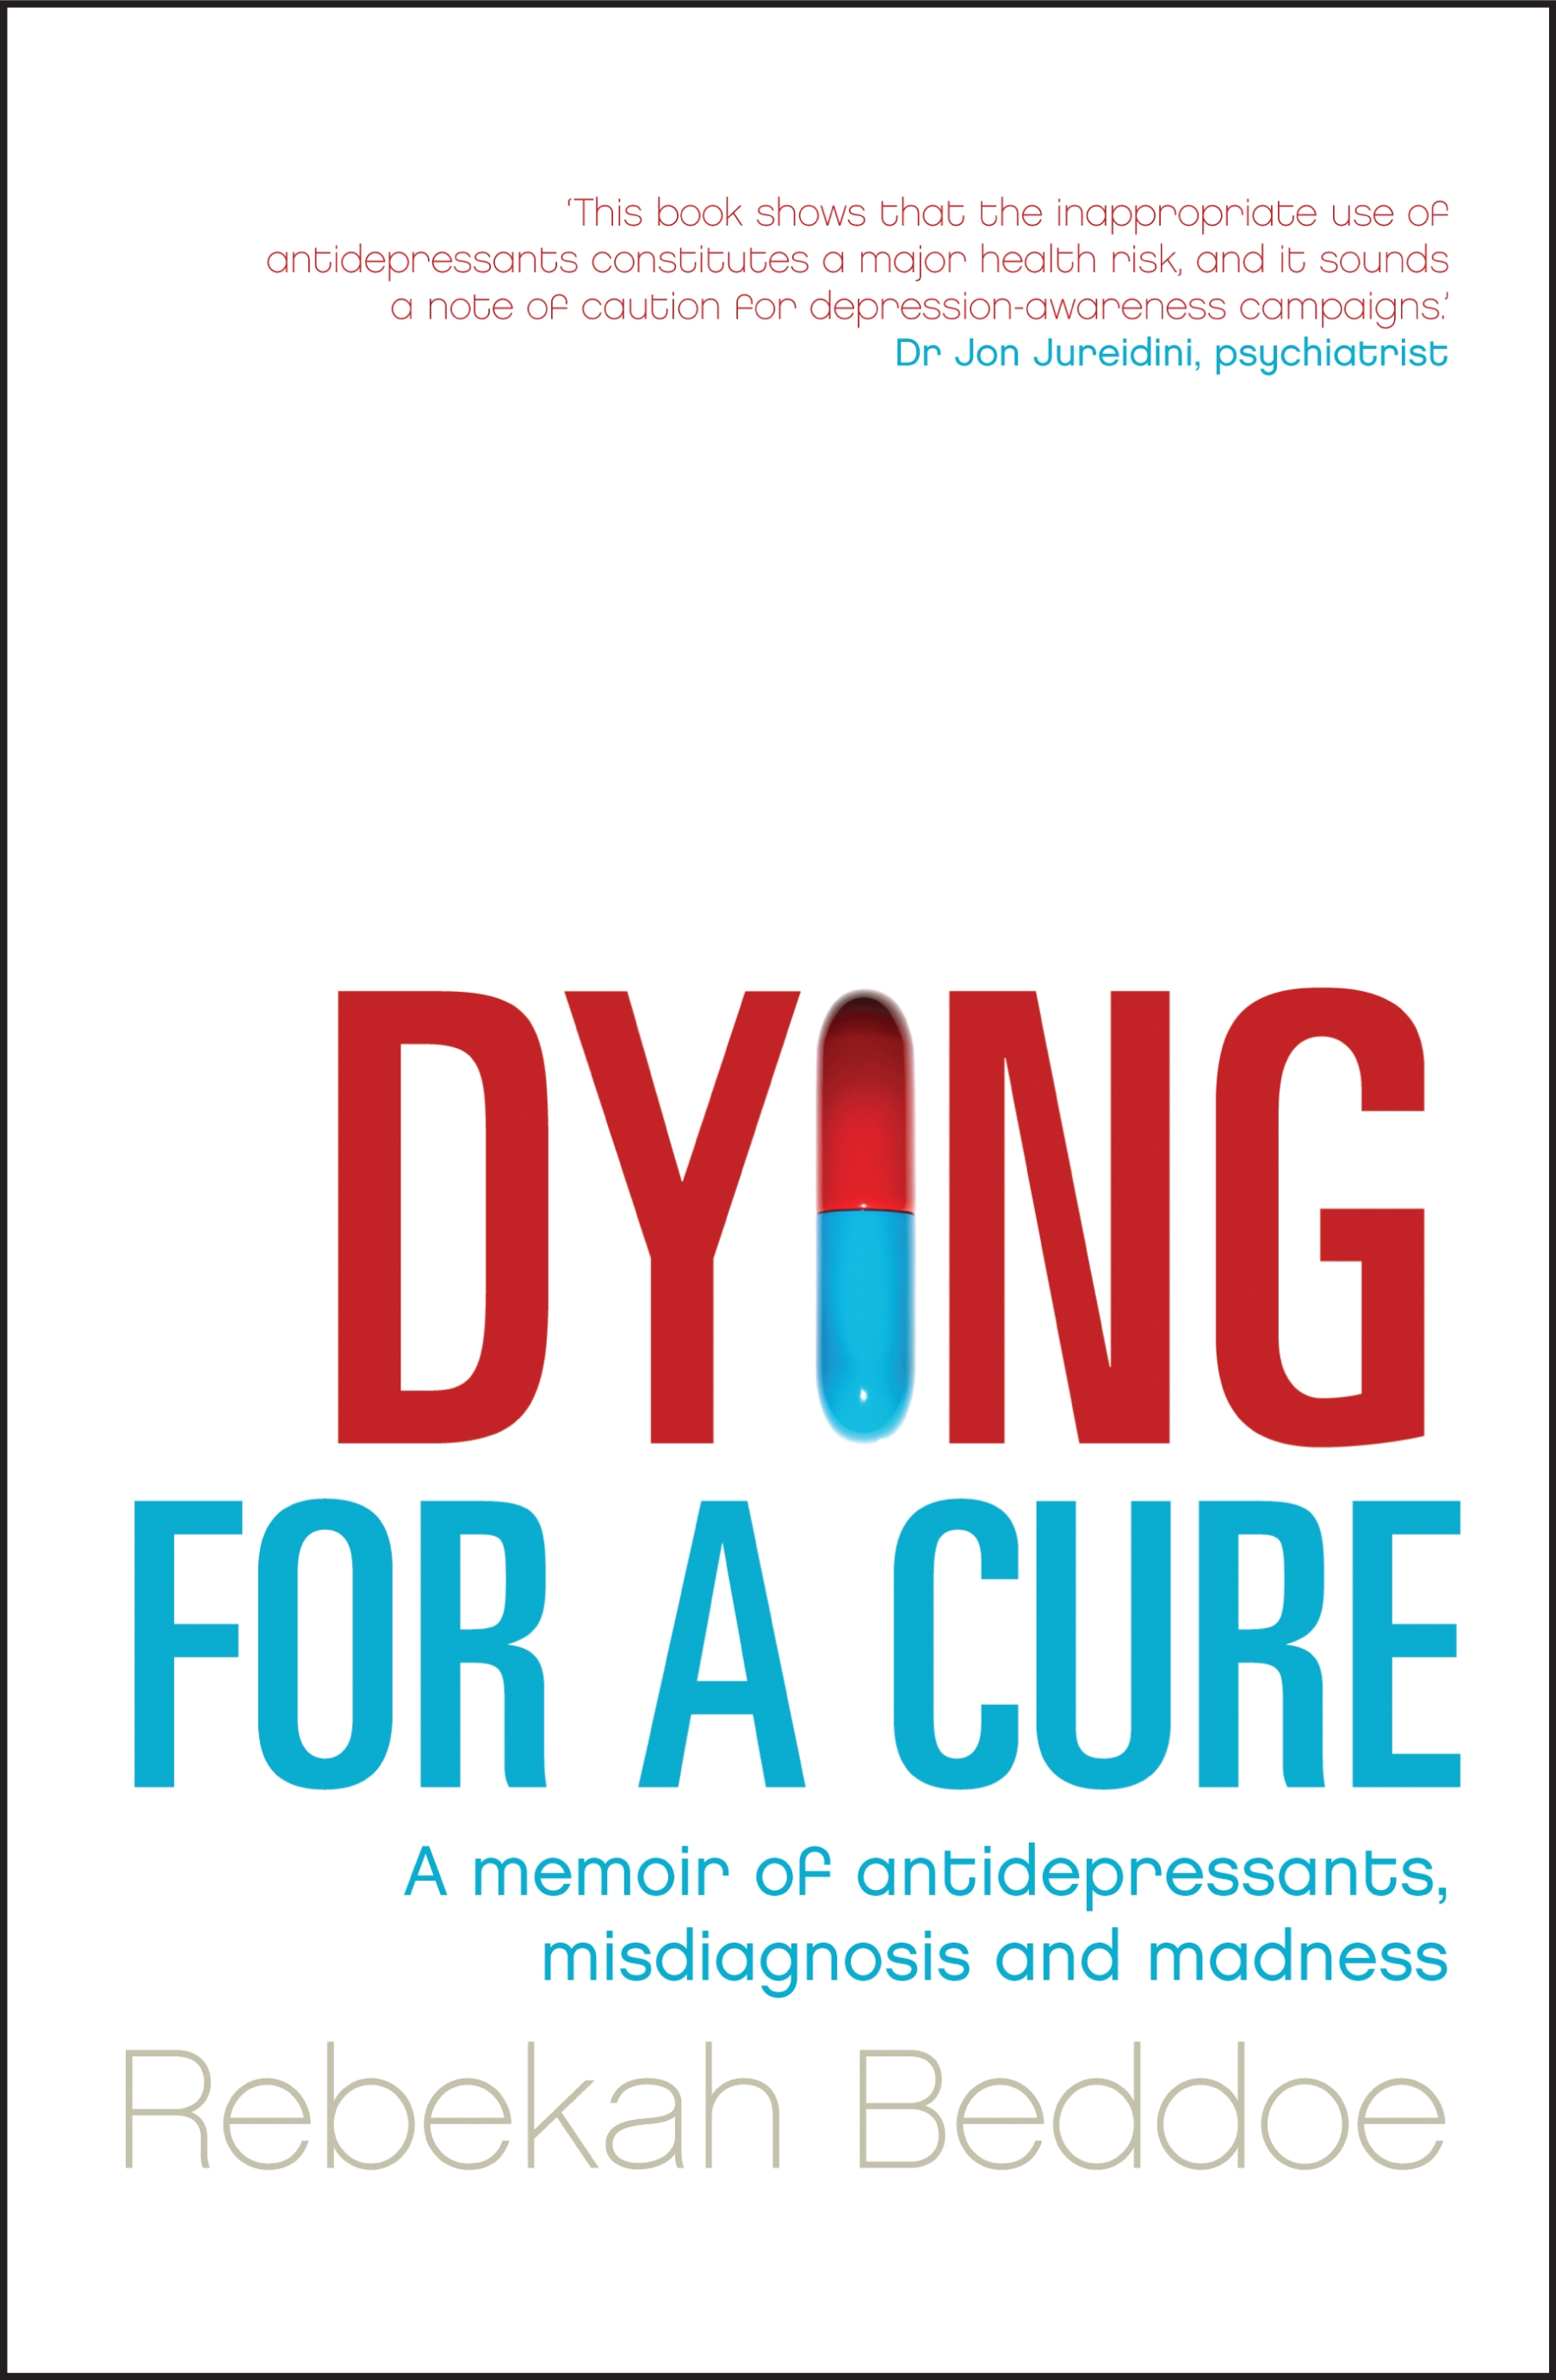 Dying for a Cure - Rebekah Beddoe